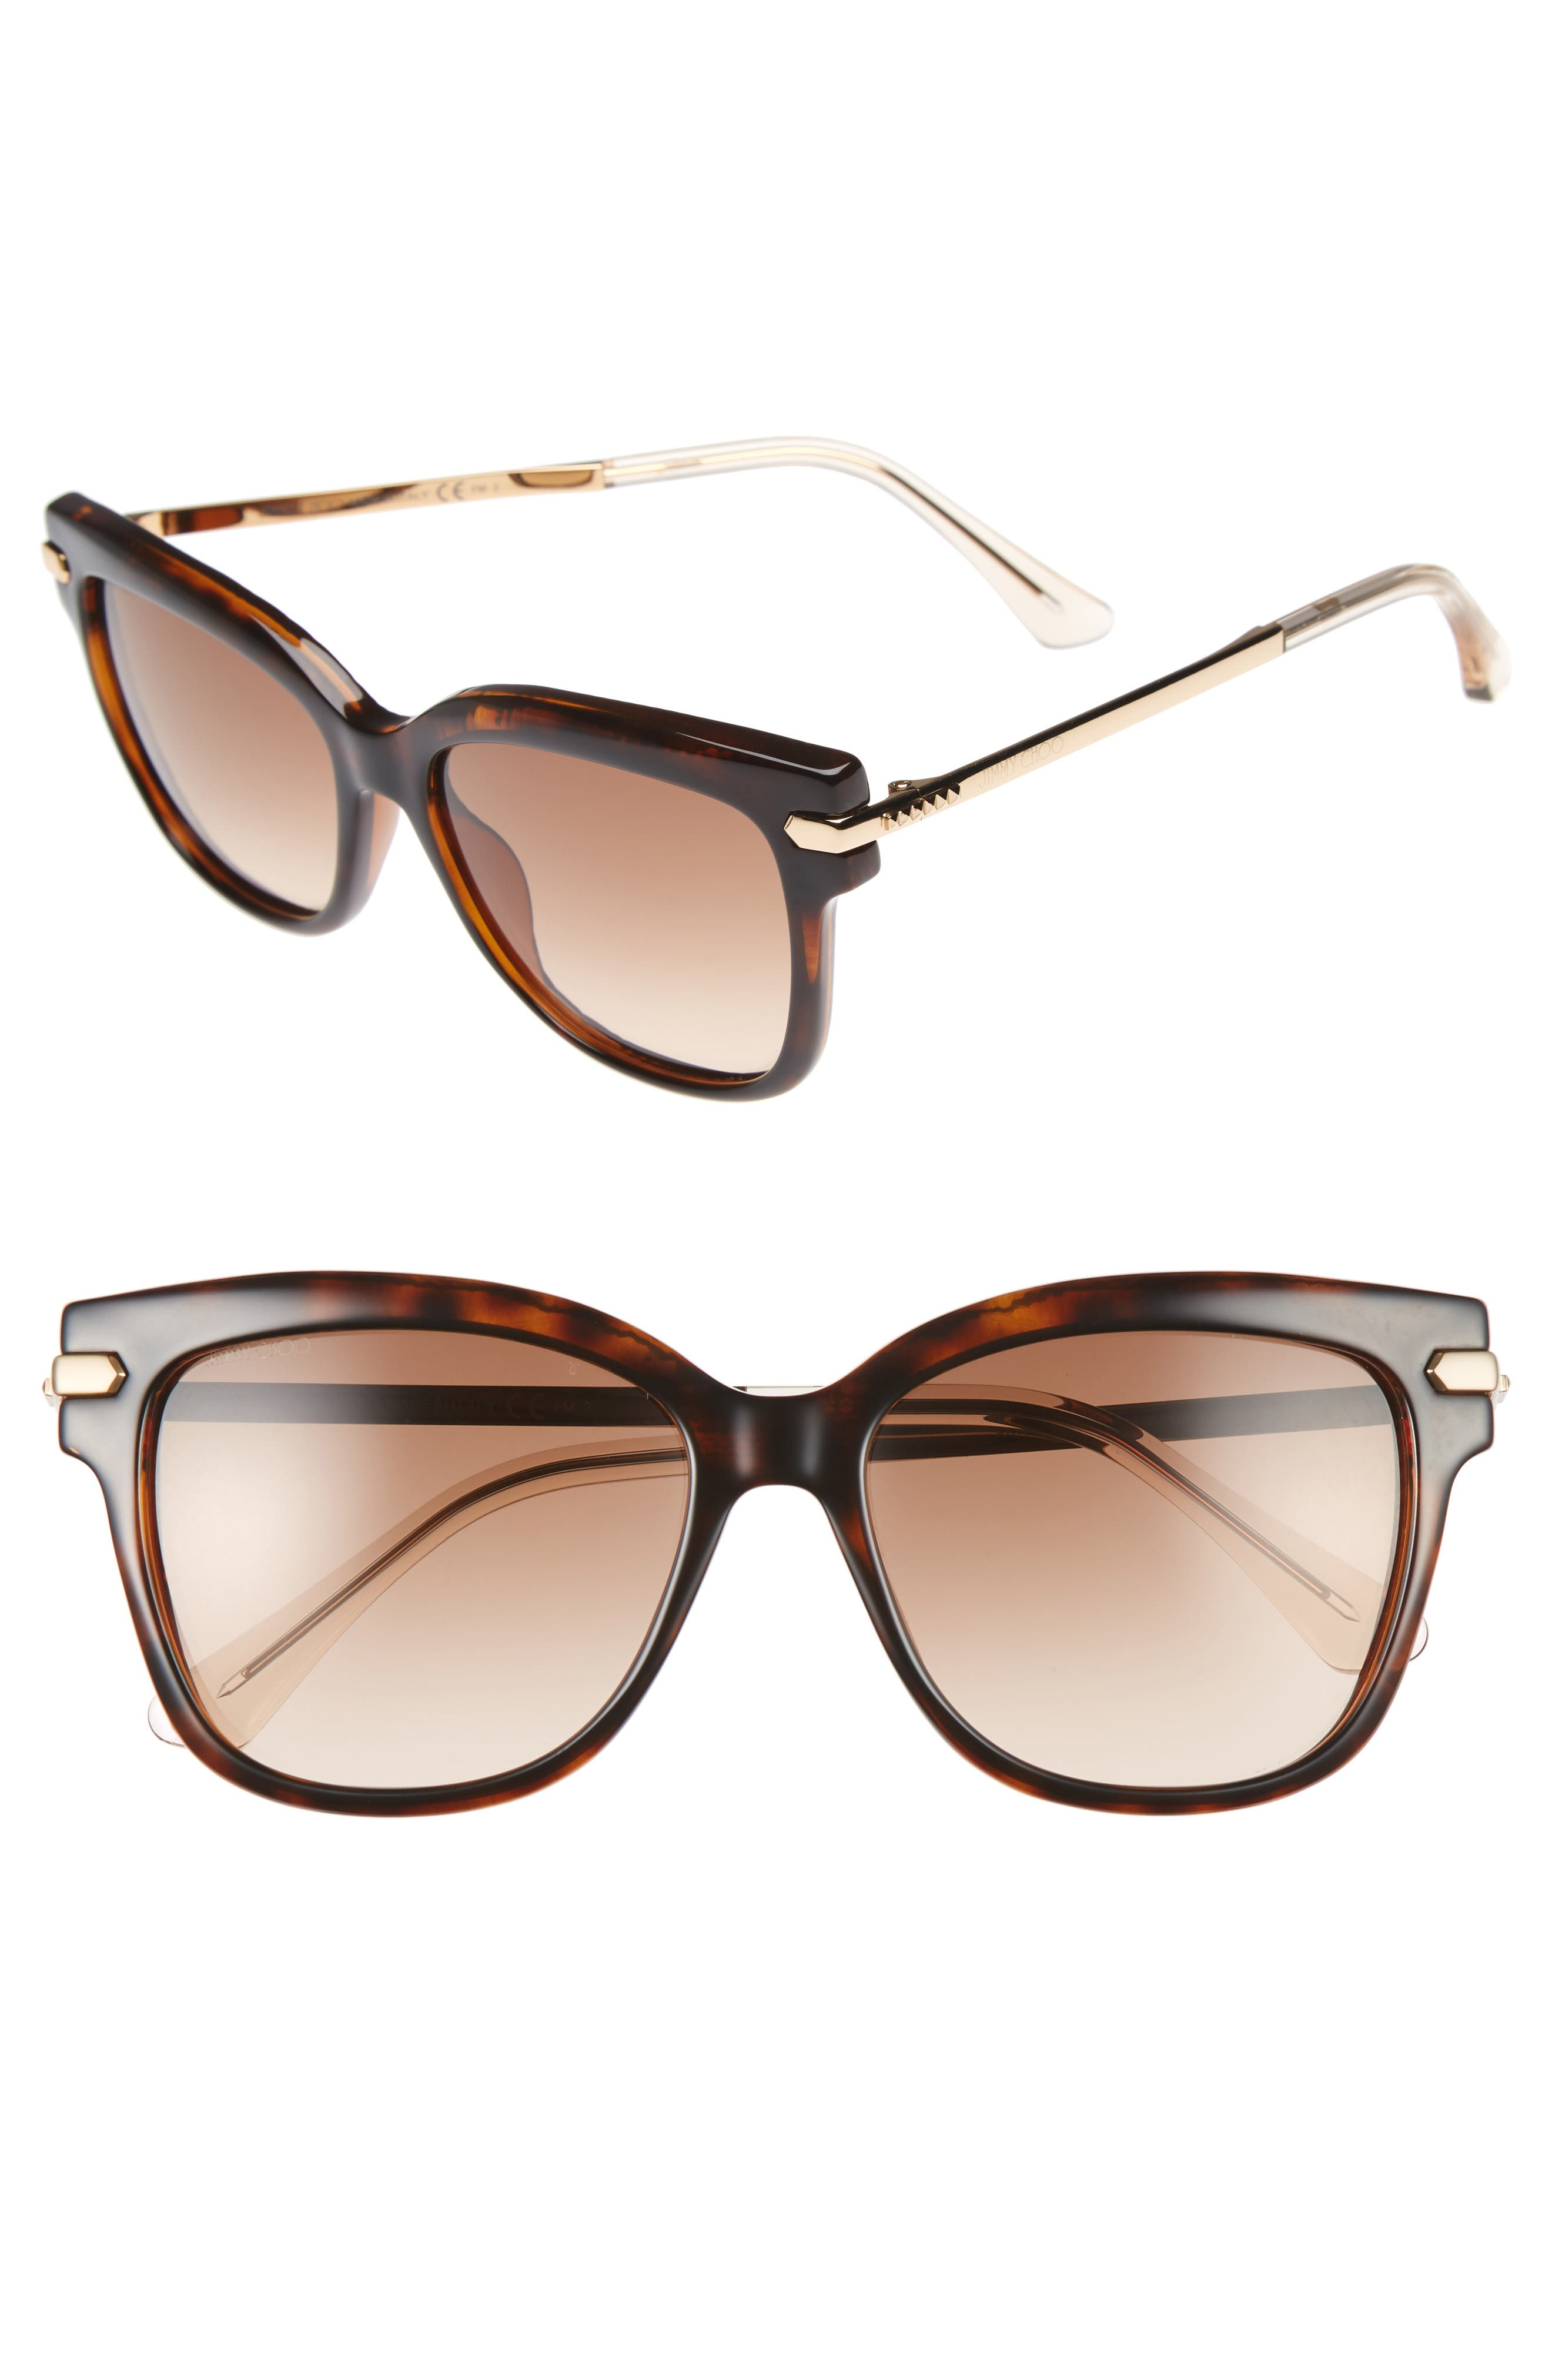 Jimmy Choo Aras 54mm Cat Eye Sunglasses